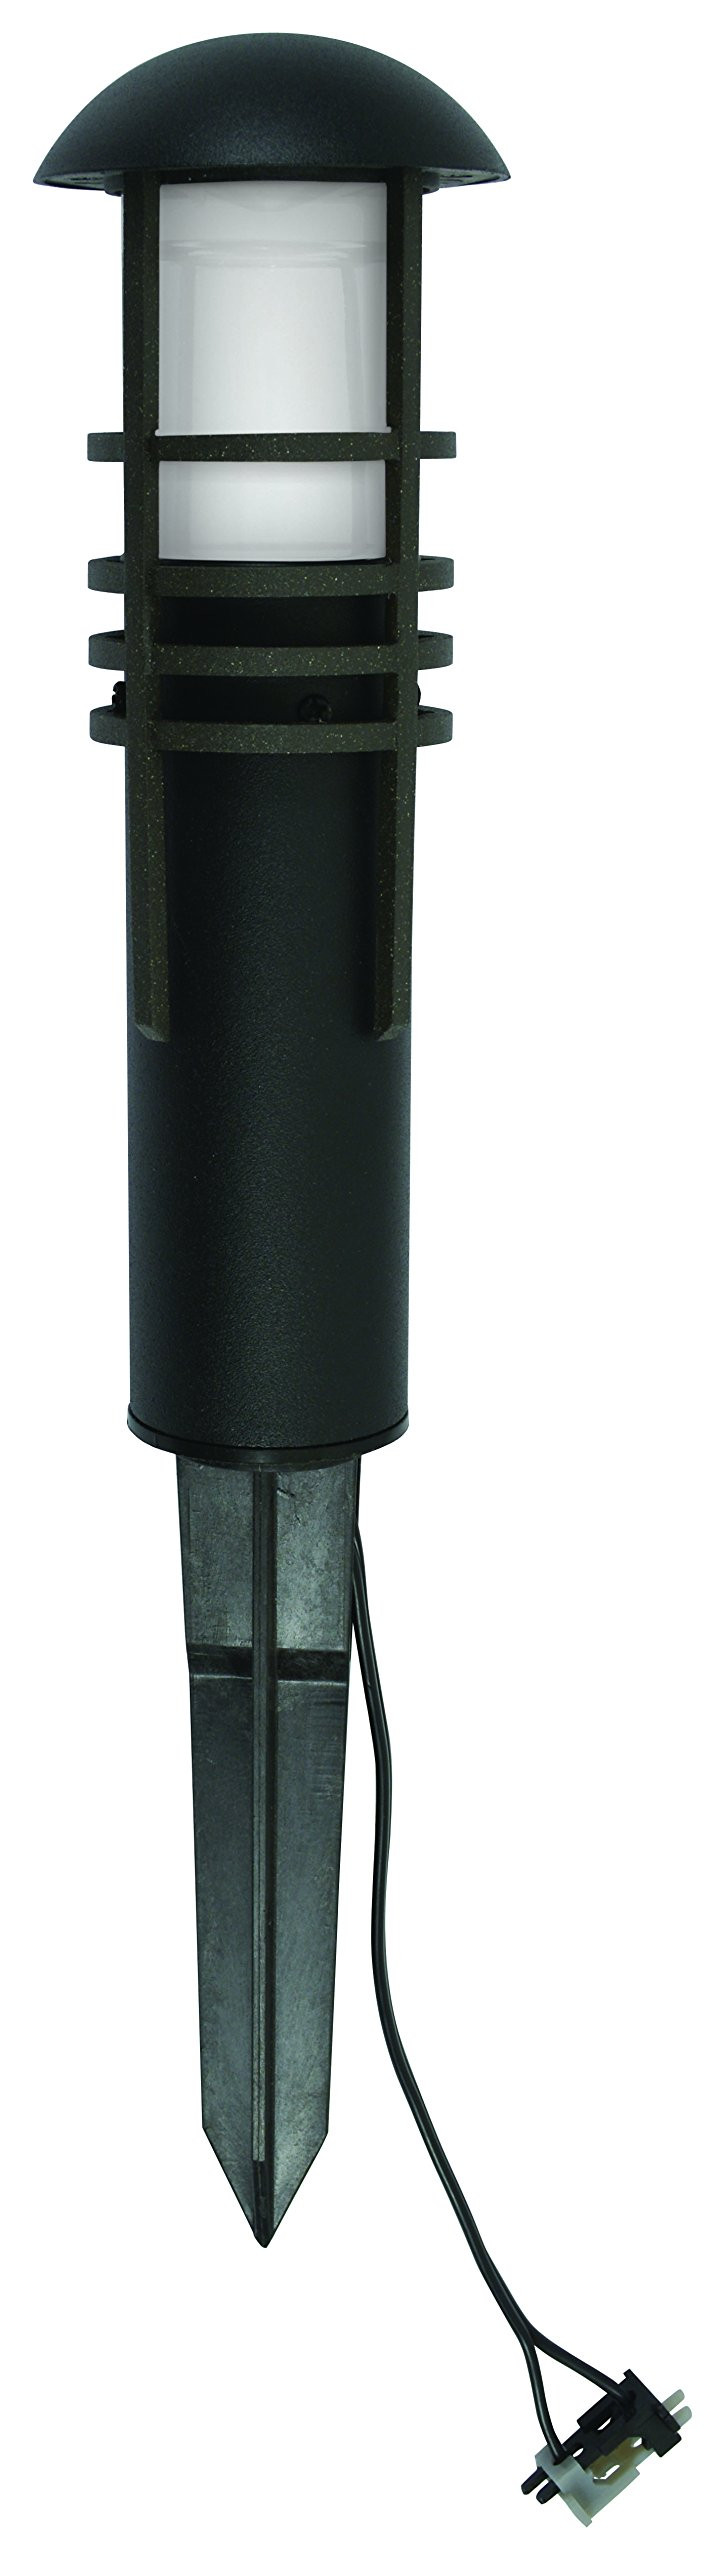 Outdoor Malibu LED Landscape Lighting 8400-4320-01 low voltage aged iron finish metal bollard light